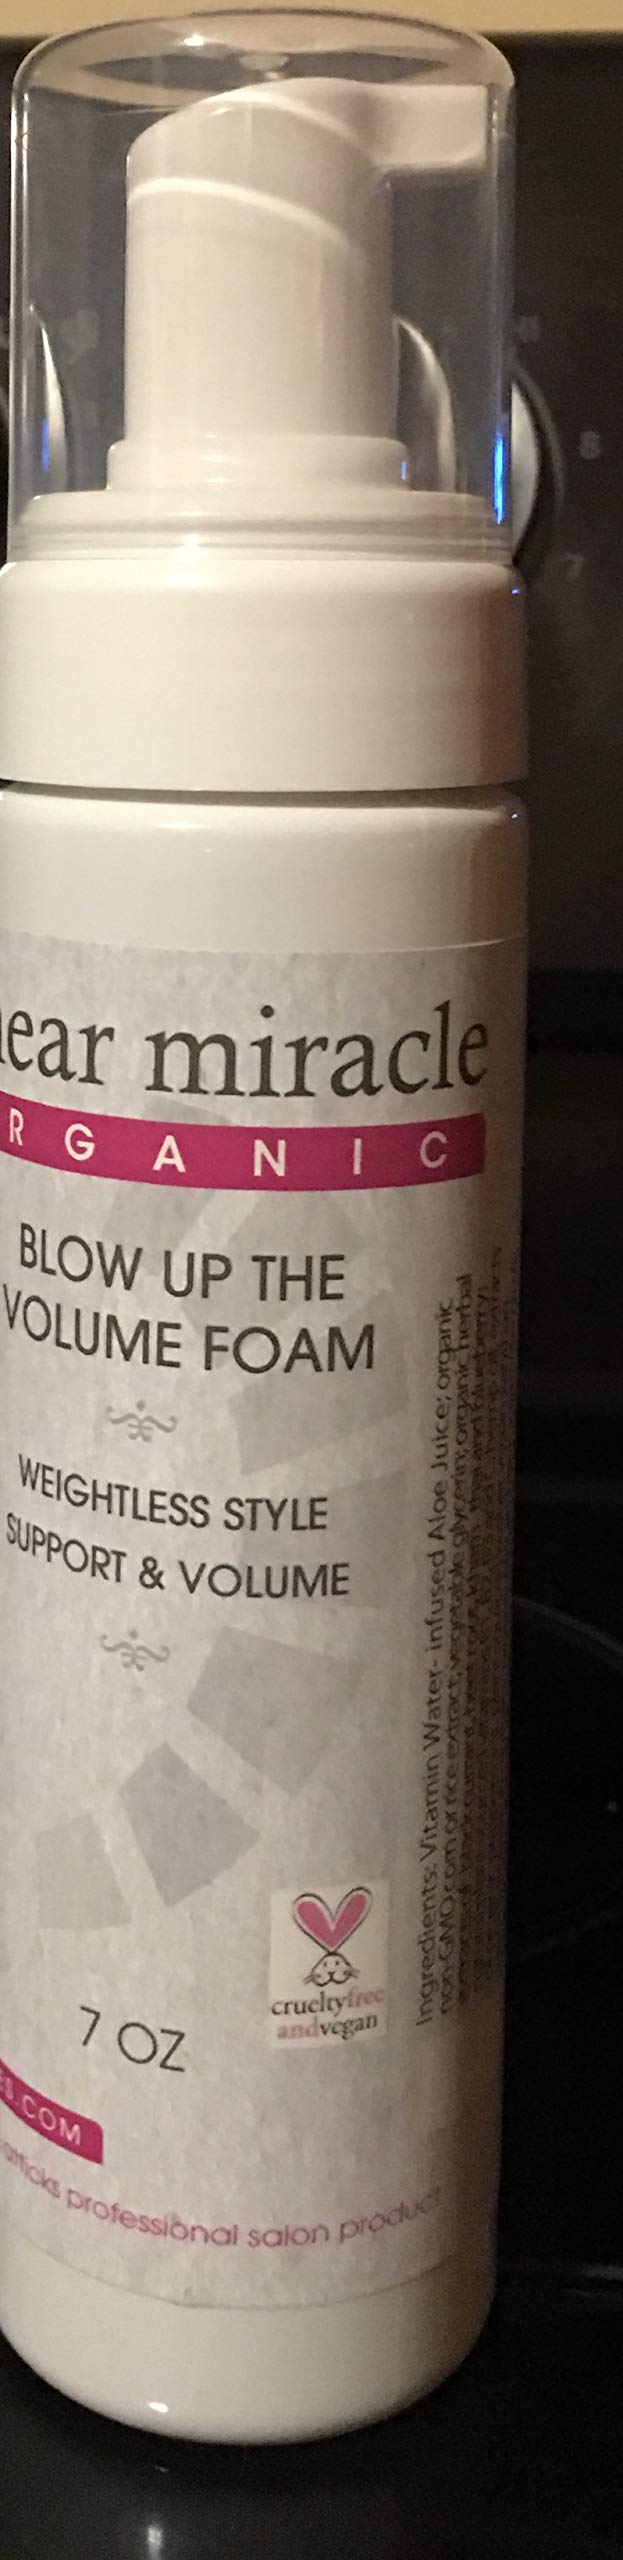 Blow up the Volume Foam- Adds Volume- Gluten Free- Vegan- Alcohol Free